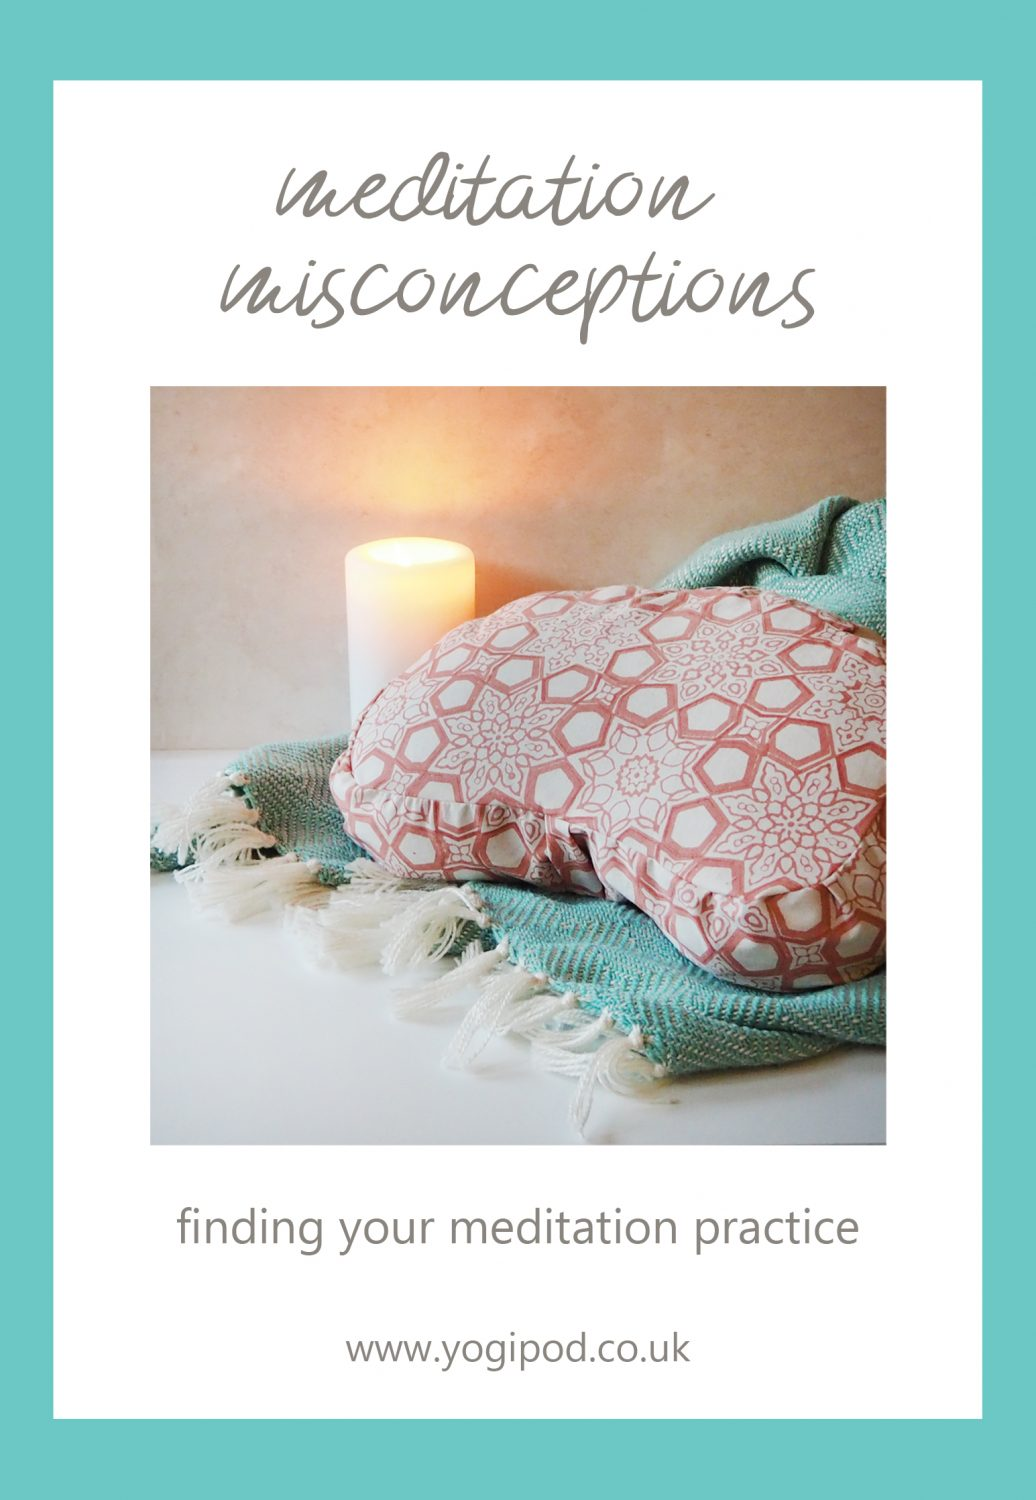 meditation misconceptions - there is no right way to meditate - find your meditation practice